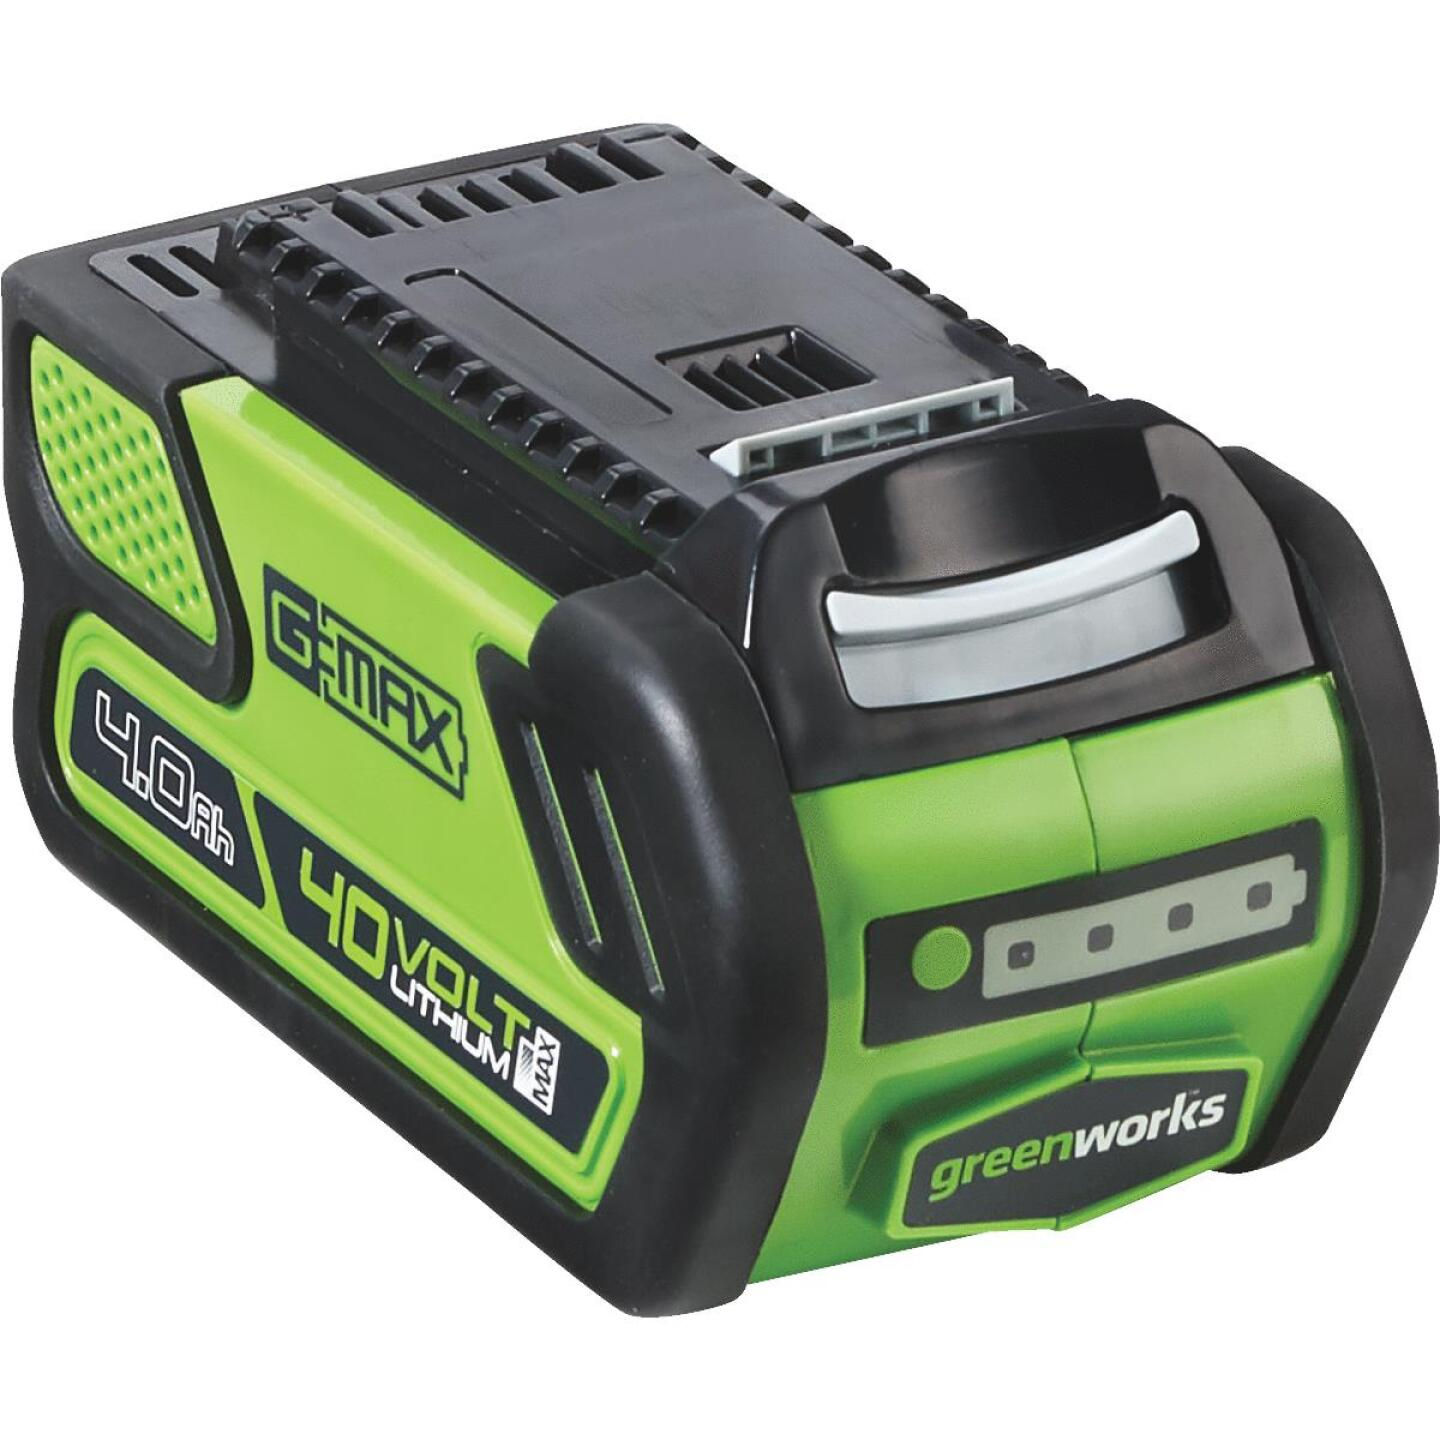 Greenworks 40V 4AH Tool Replacement Battery Image 1